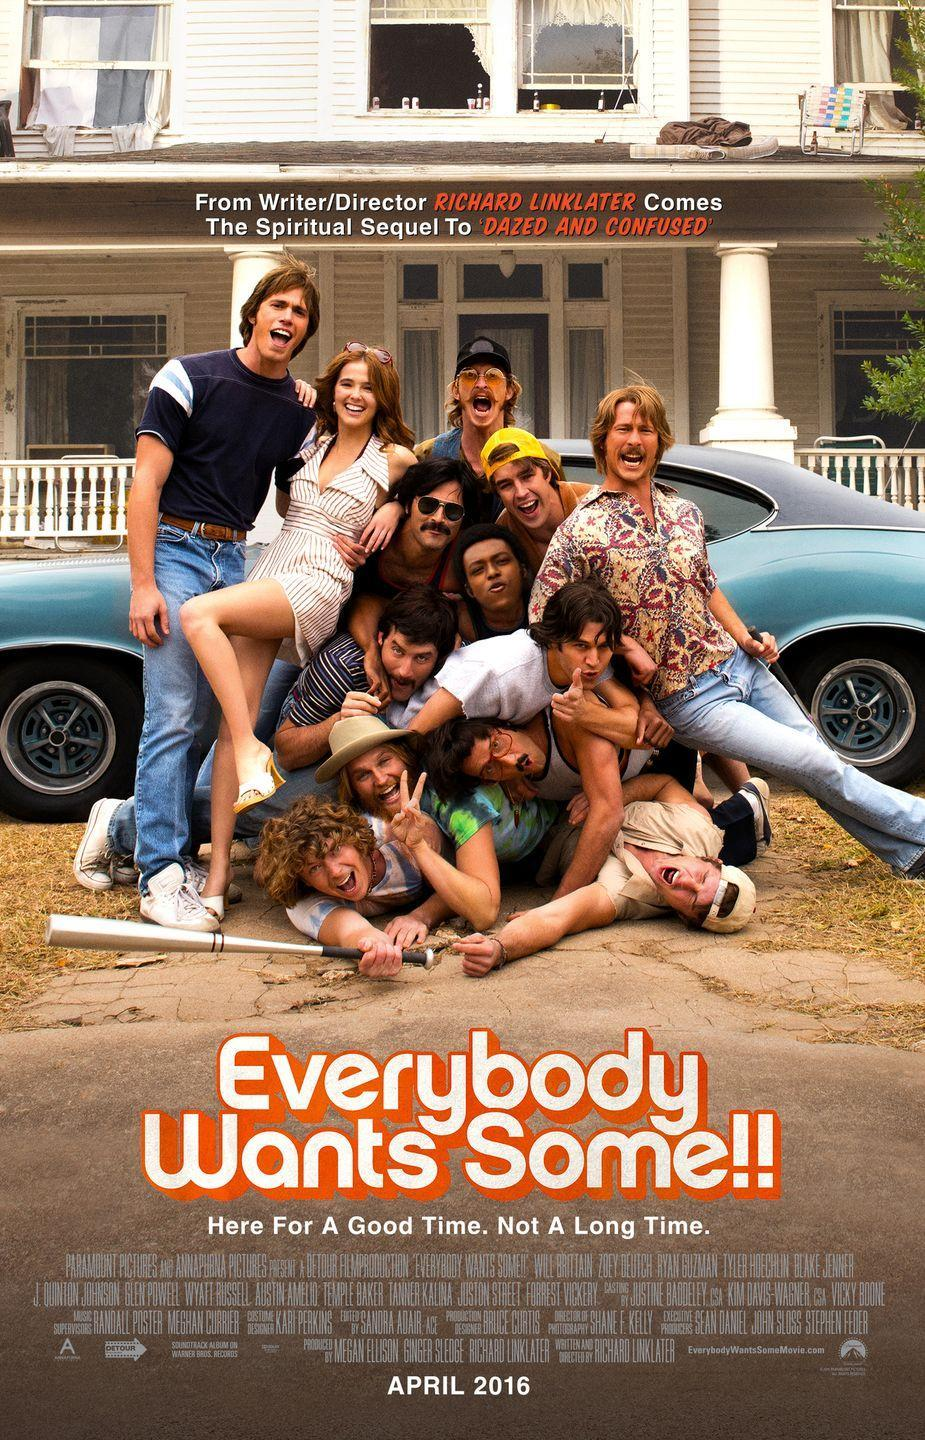 """<p>Set in Texas in the year 1980, a college freshman named Jake (<strong>Blake Jenner</strong>) meets his new best friends and baseball teammates. Despite being warned by their coach to be responsible, they all rebel and partake in mischief. The film's focus on the nostalgic details – the mustaches, cars, wardrobe, and '80s-esque soundtrack — is what makes this film worth a watch.</p><p><a class=""""link rapid-noclick-resp"""" href=""""https://www.amazon.com/Everybody-Wants-Some-Will-Brittain/dp/B01DMZX1PU/ref=sr_1_1?crid=1VT5IWWHYCWFL&dchild=1&keywords=everybody+wants+some&qid=1596922472&sprefix=everybody+wants+some%2Caps%2C143&sr=8-1&tag=syn-yahoo-20&ascsubtag=%5Bartid%7C10055.g.33513354%5Bsrc%7Cyahoo-us"""" rel=""""nofollow noopener"""" target=""""_blank"""" data-ylk=""""slk:WATCH NOW"""">WATCH NOW</a></p>"""